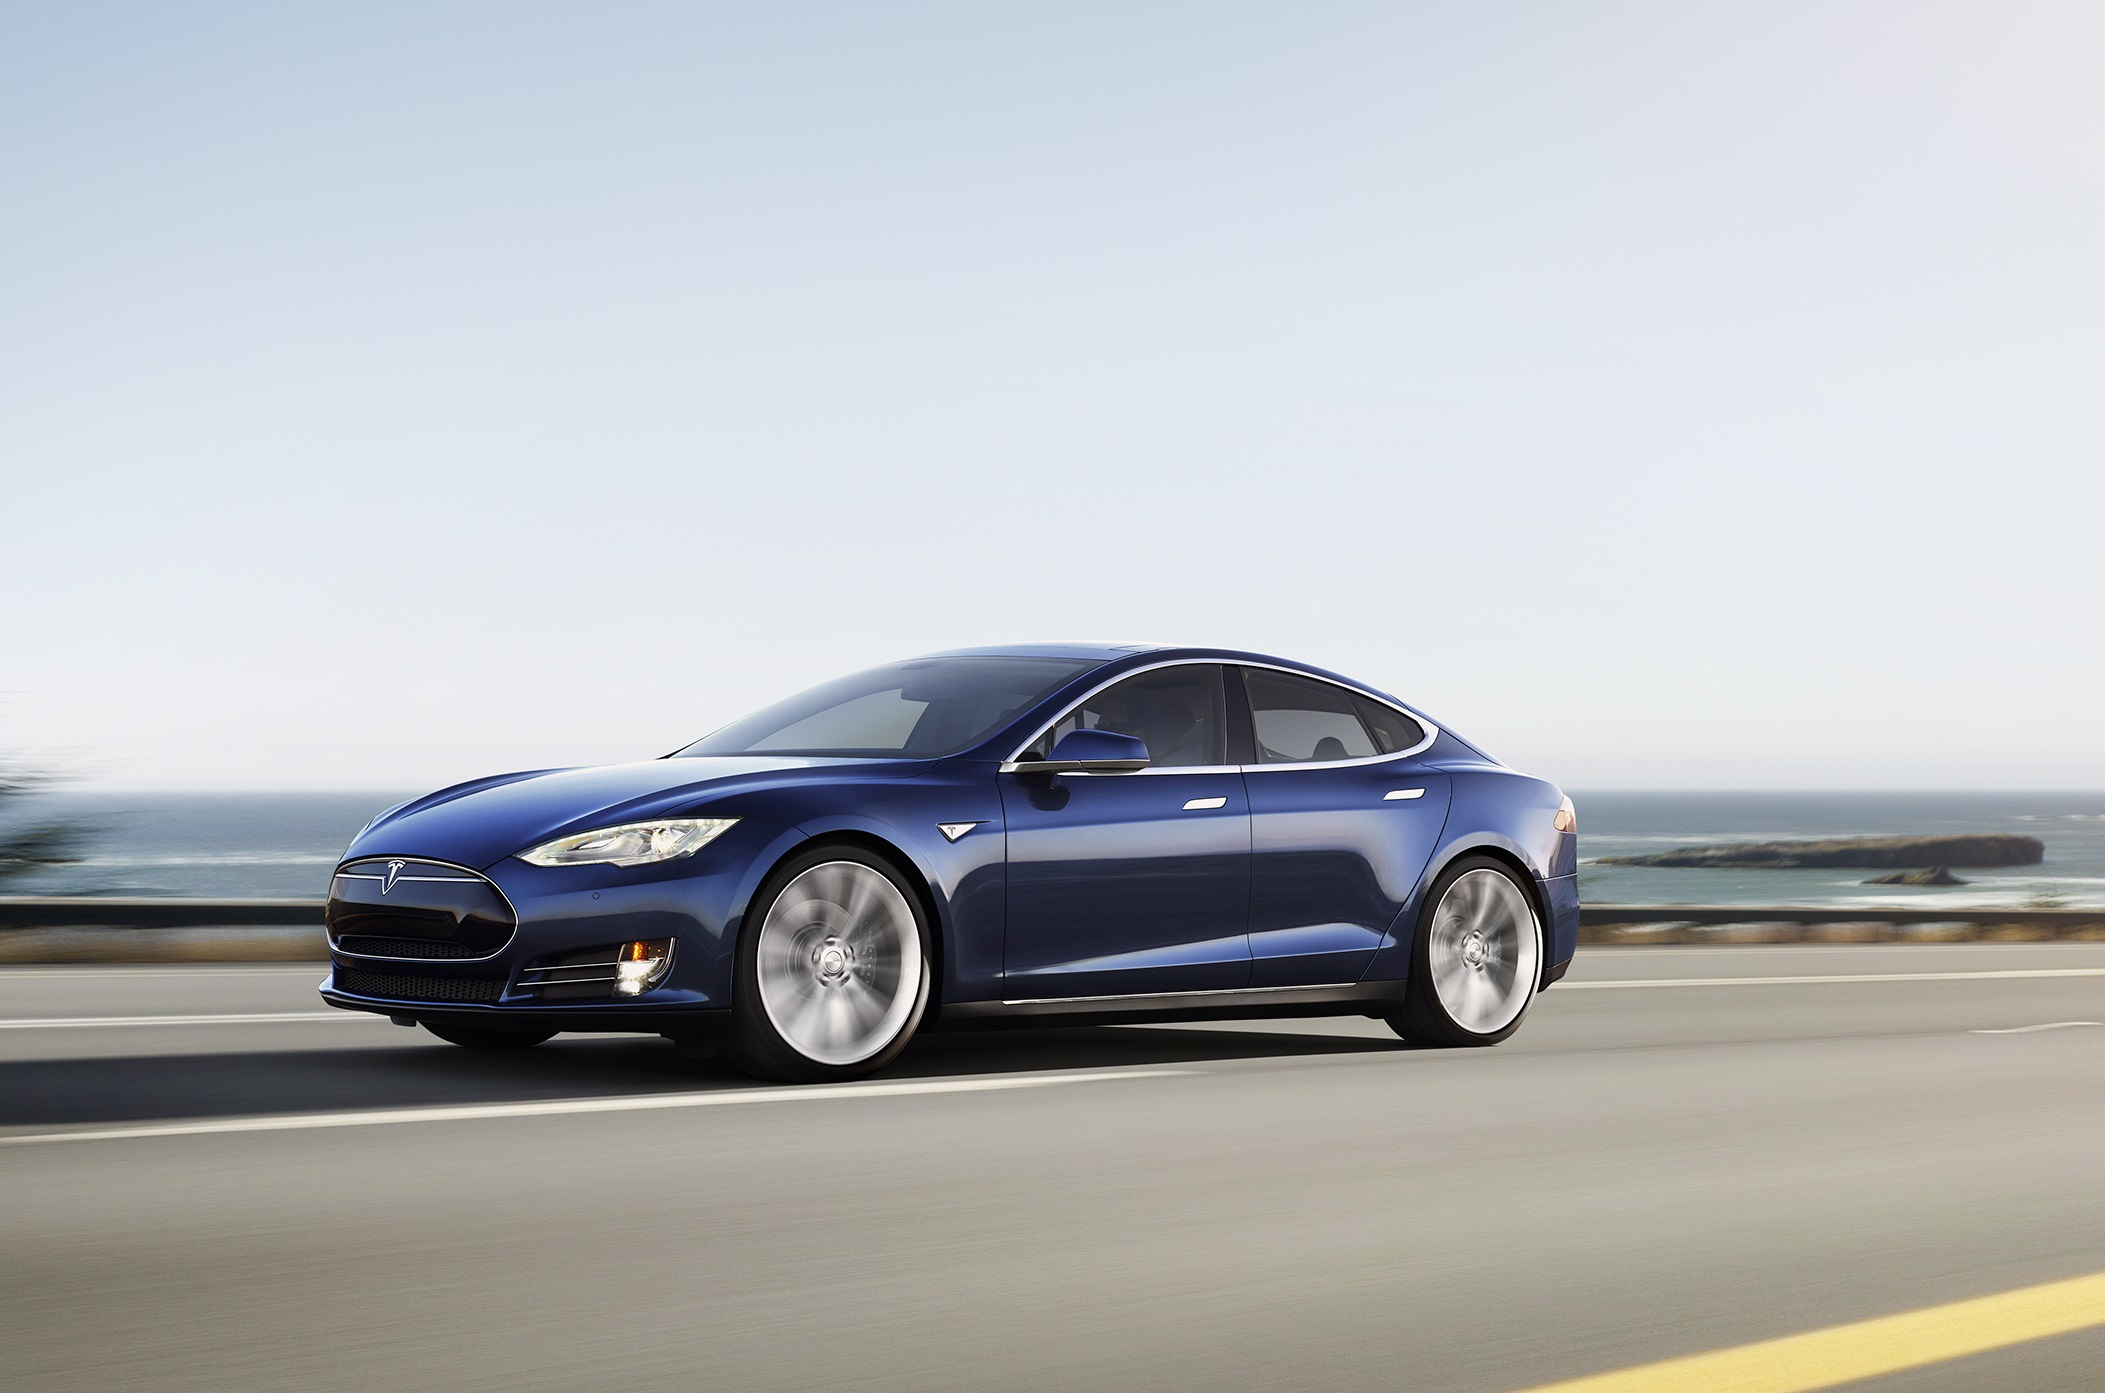 Tesla Model S Widescreen